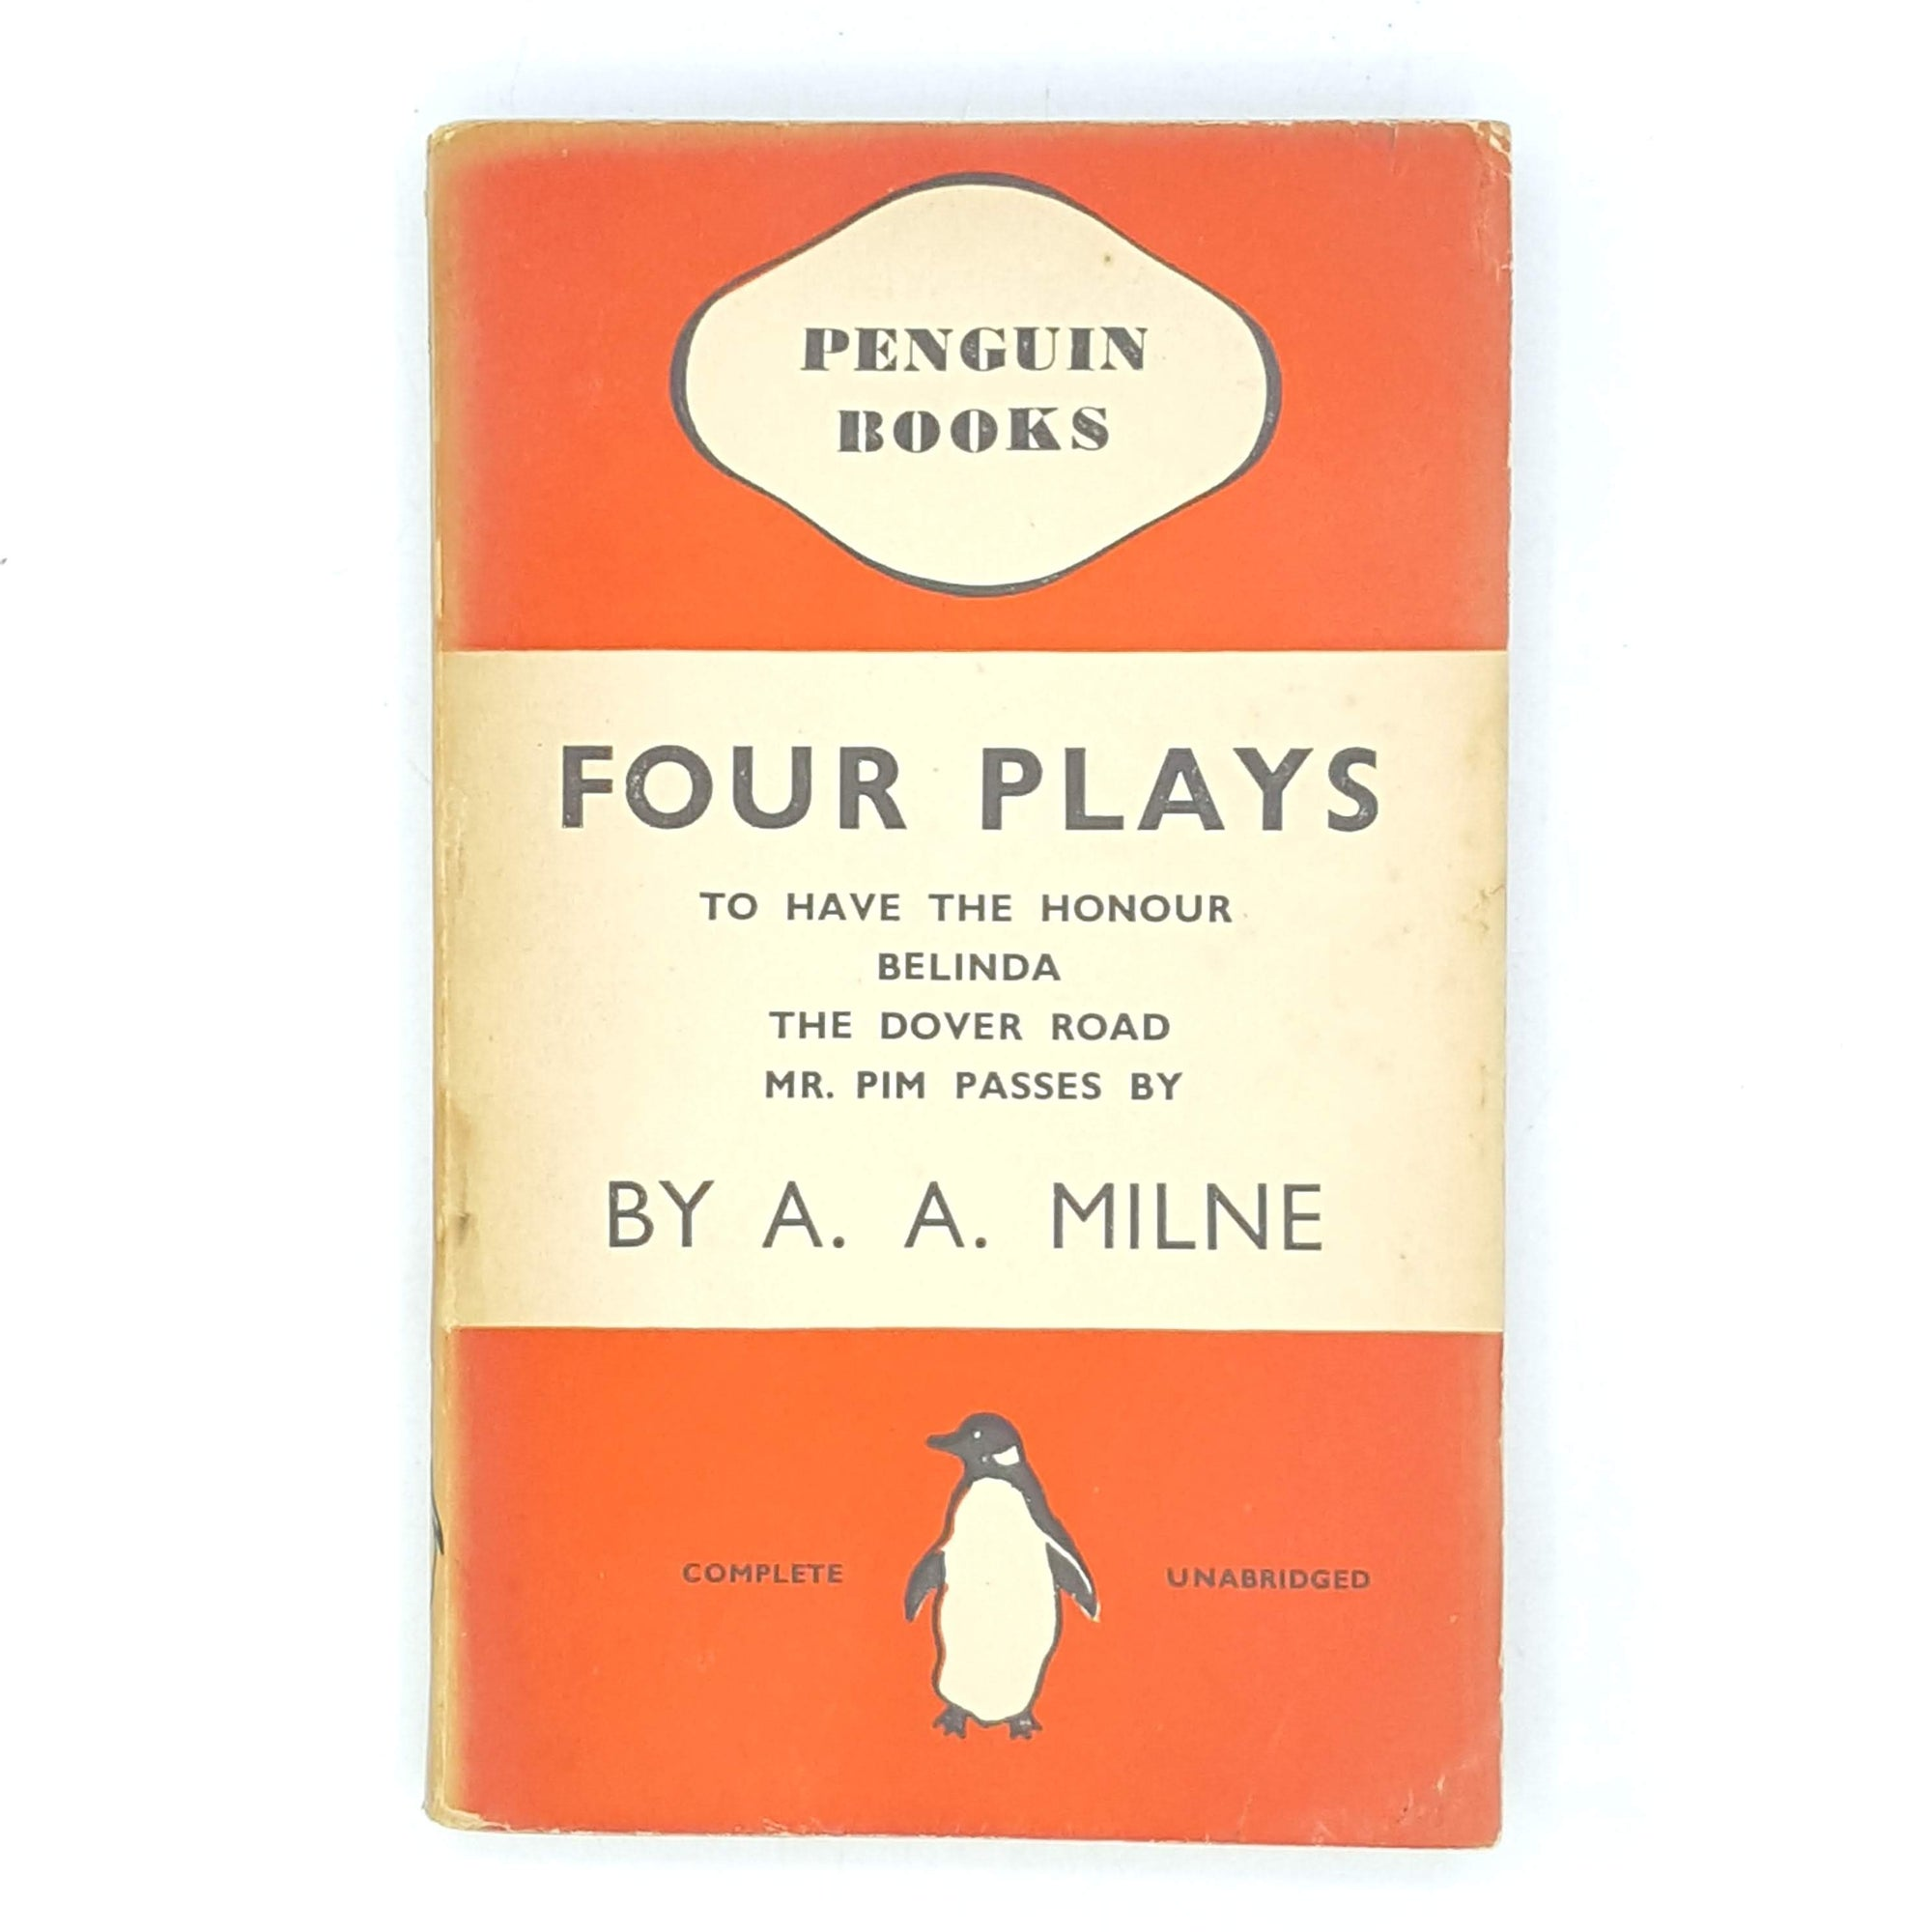 antique-old-books-thrift-vintage-first-edition-aa-milne-classic-decorative-four-plays-penguin-country-house-library-red-patterned-